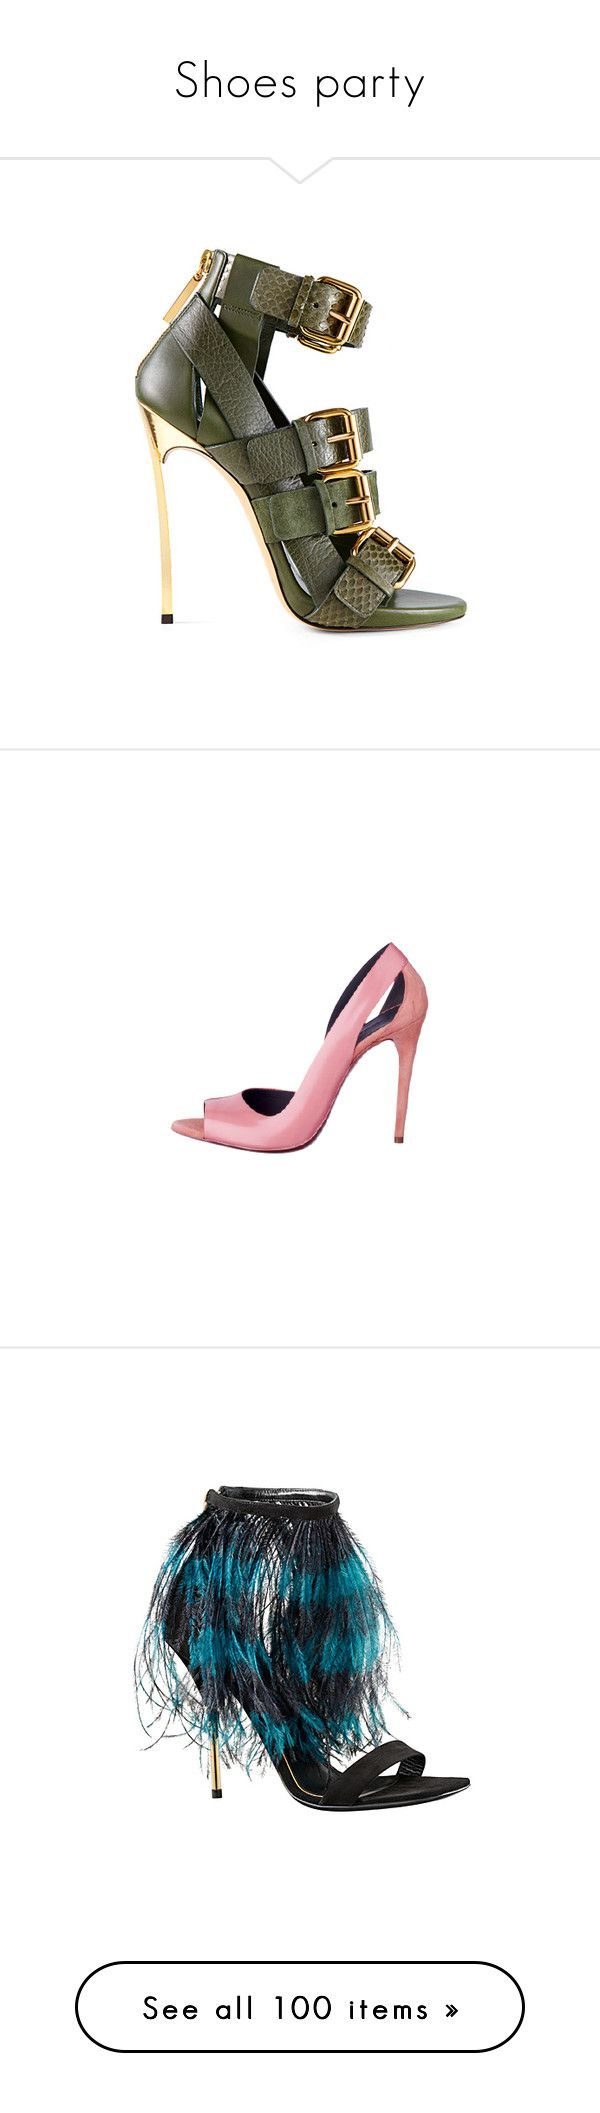 """""""Shoes party"""" by saltless ❤ liked on Polyvore featuring shoes, sandals, heels, heeled sandals, balenciaga, scarpe, balenciaga shoes, louis vuitton, louis vuitton shoes and louis vuitton sandals"""